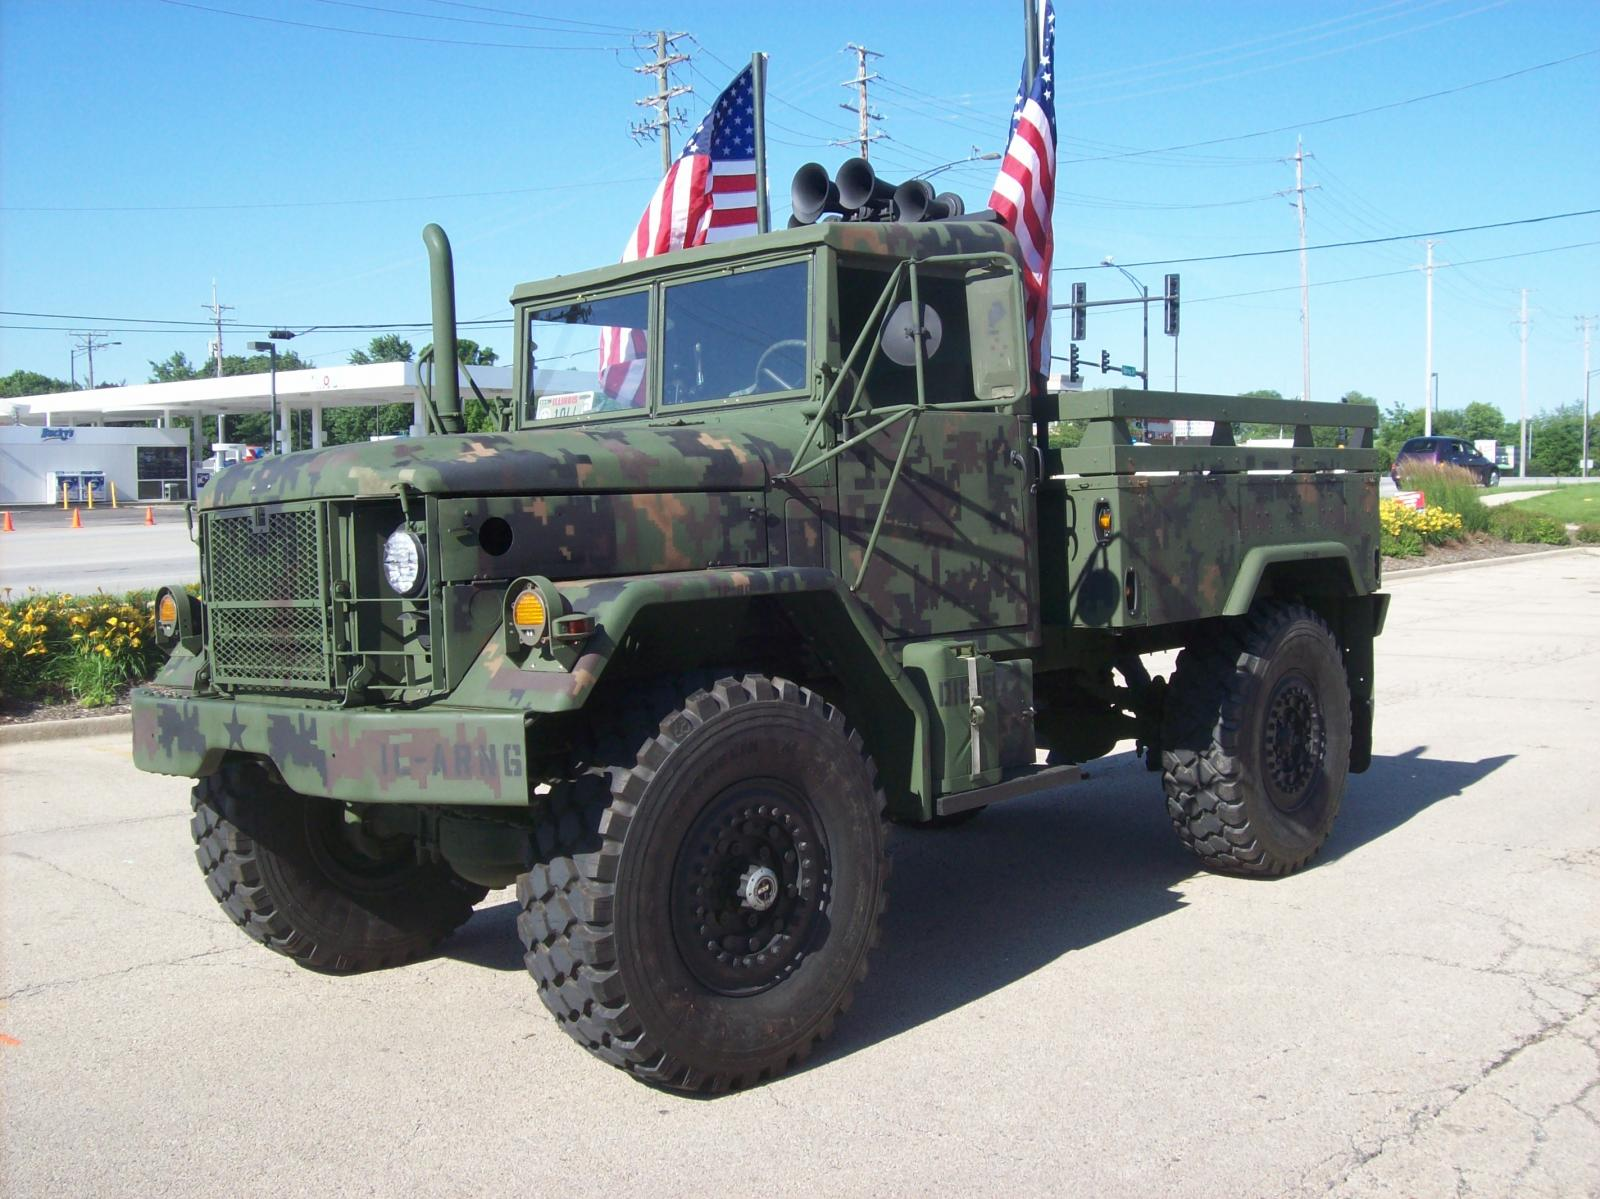 M939 5-Ton Military Trucks - Other Truck Makes ...